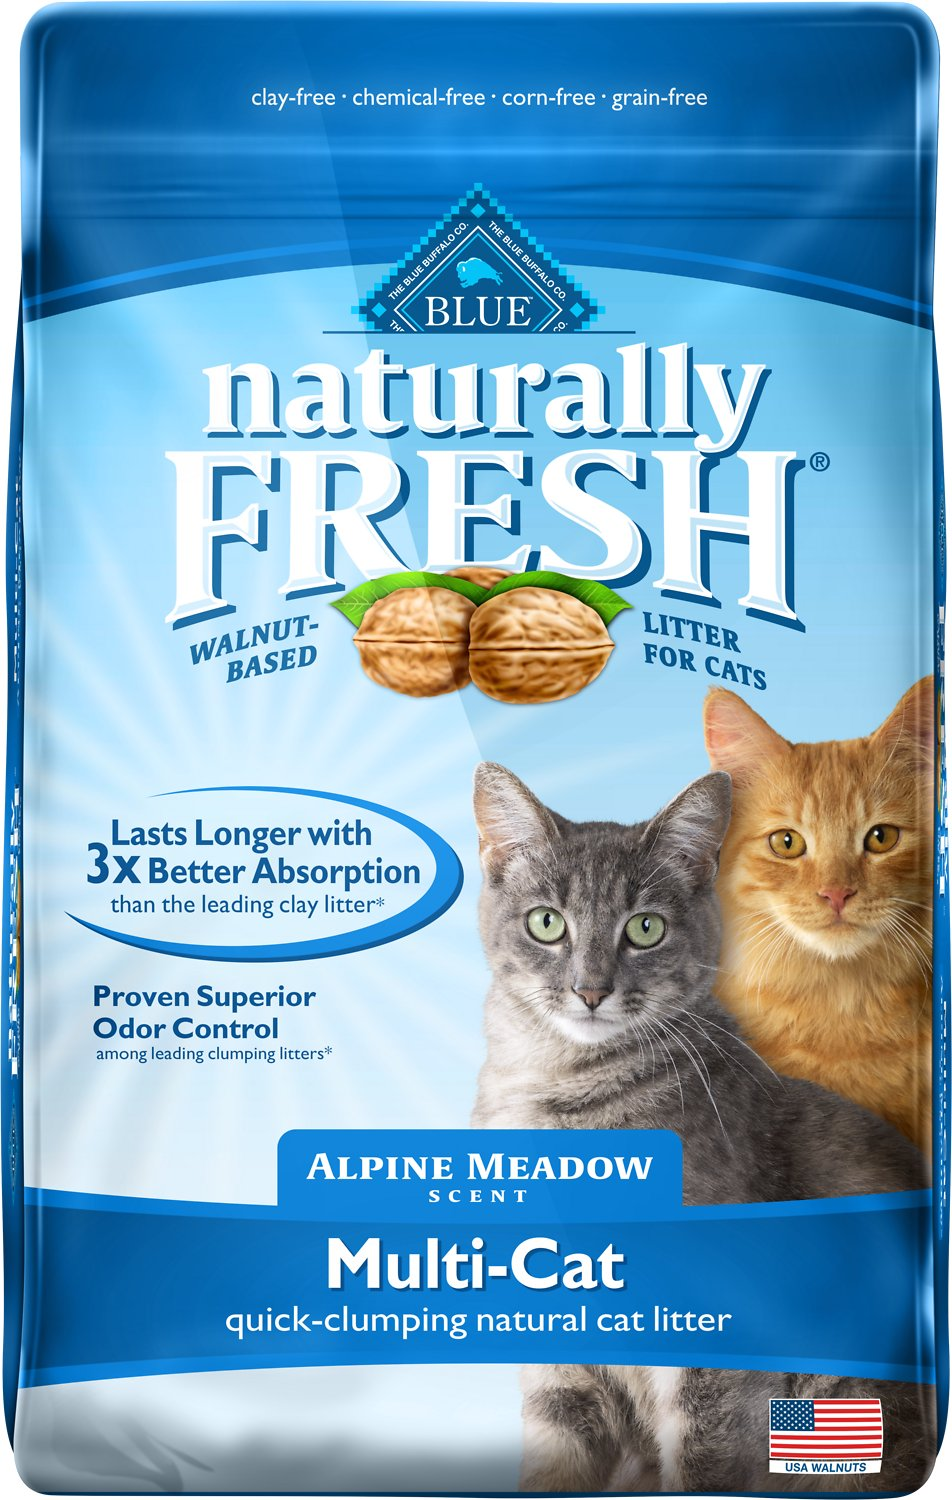 Naturally Fresh Walnut-Based Alpine Meadow Scent Multi-Cat Quick-Clumping Cat Litter, 14-lb bag